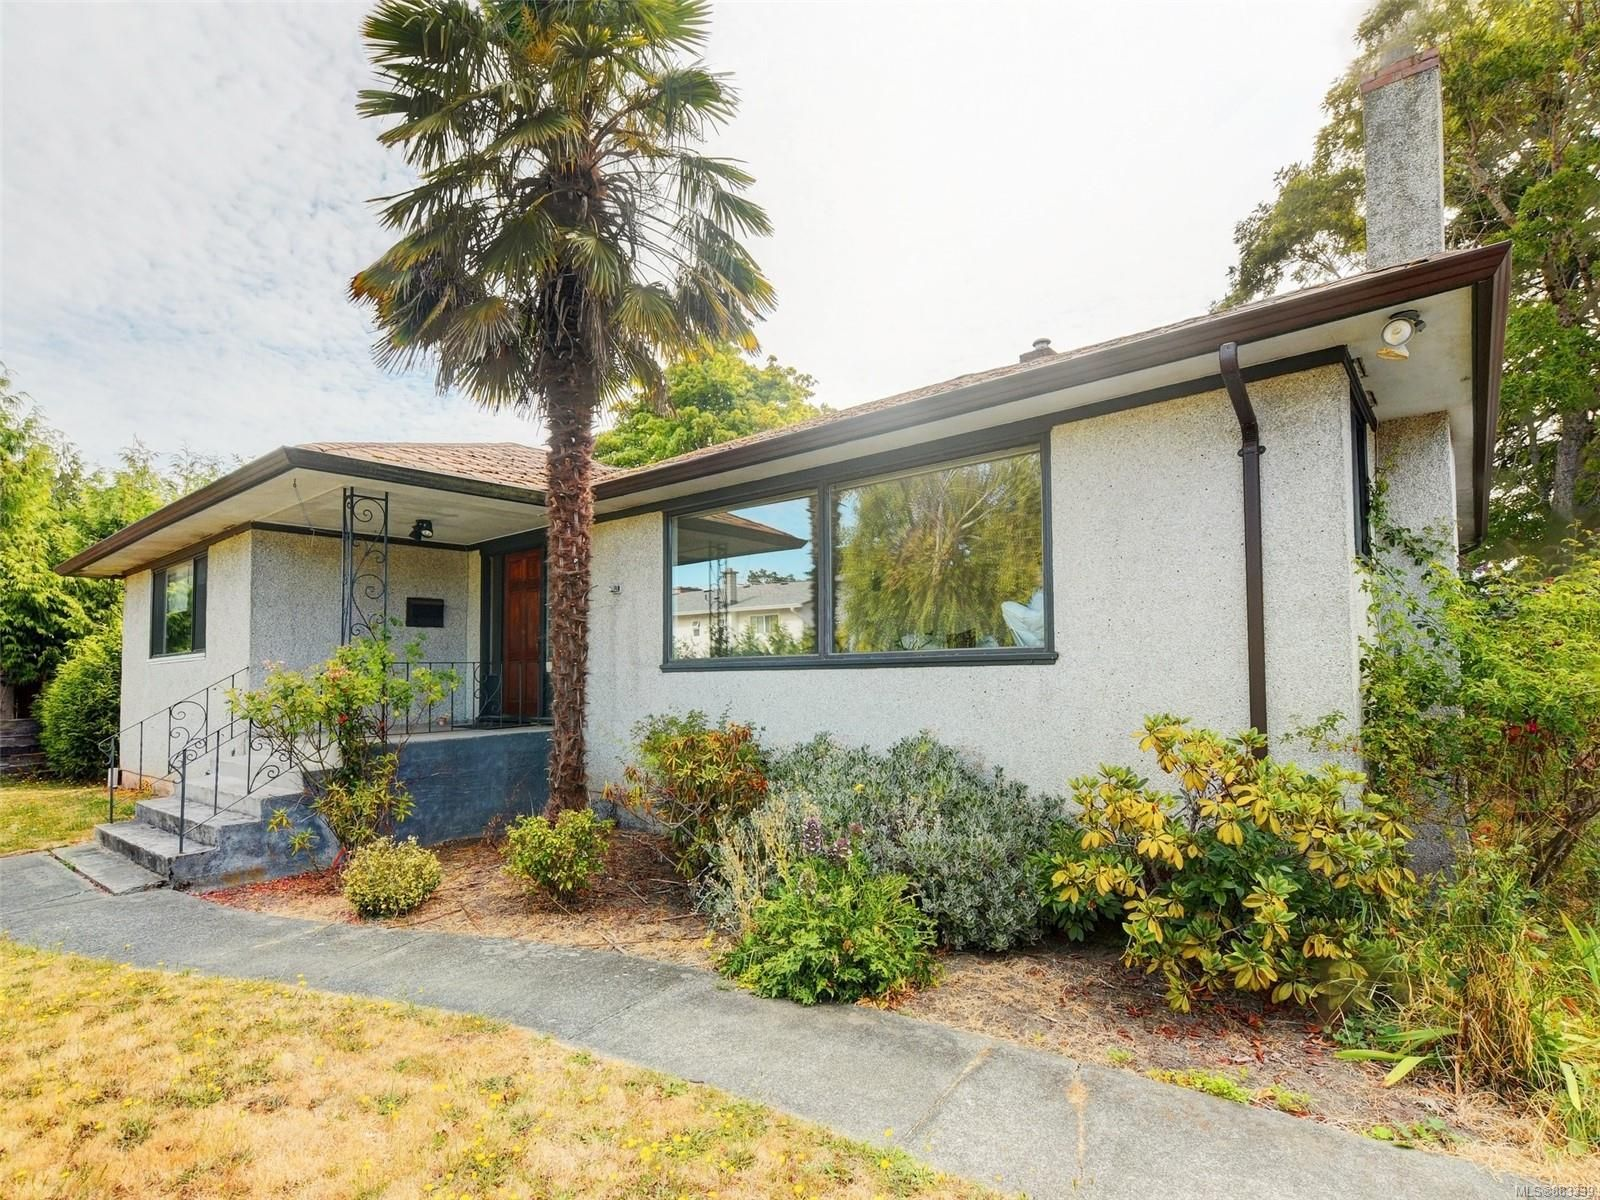 Main Photo: 4311 Tyndall Ave in : SE Gordon Head House for sale (Saanich East)  : MLS®# 883339